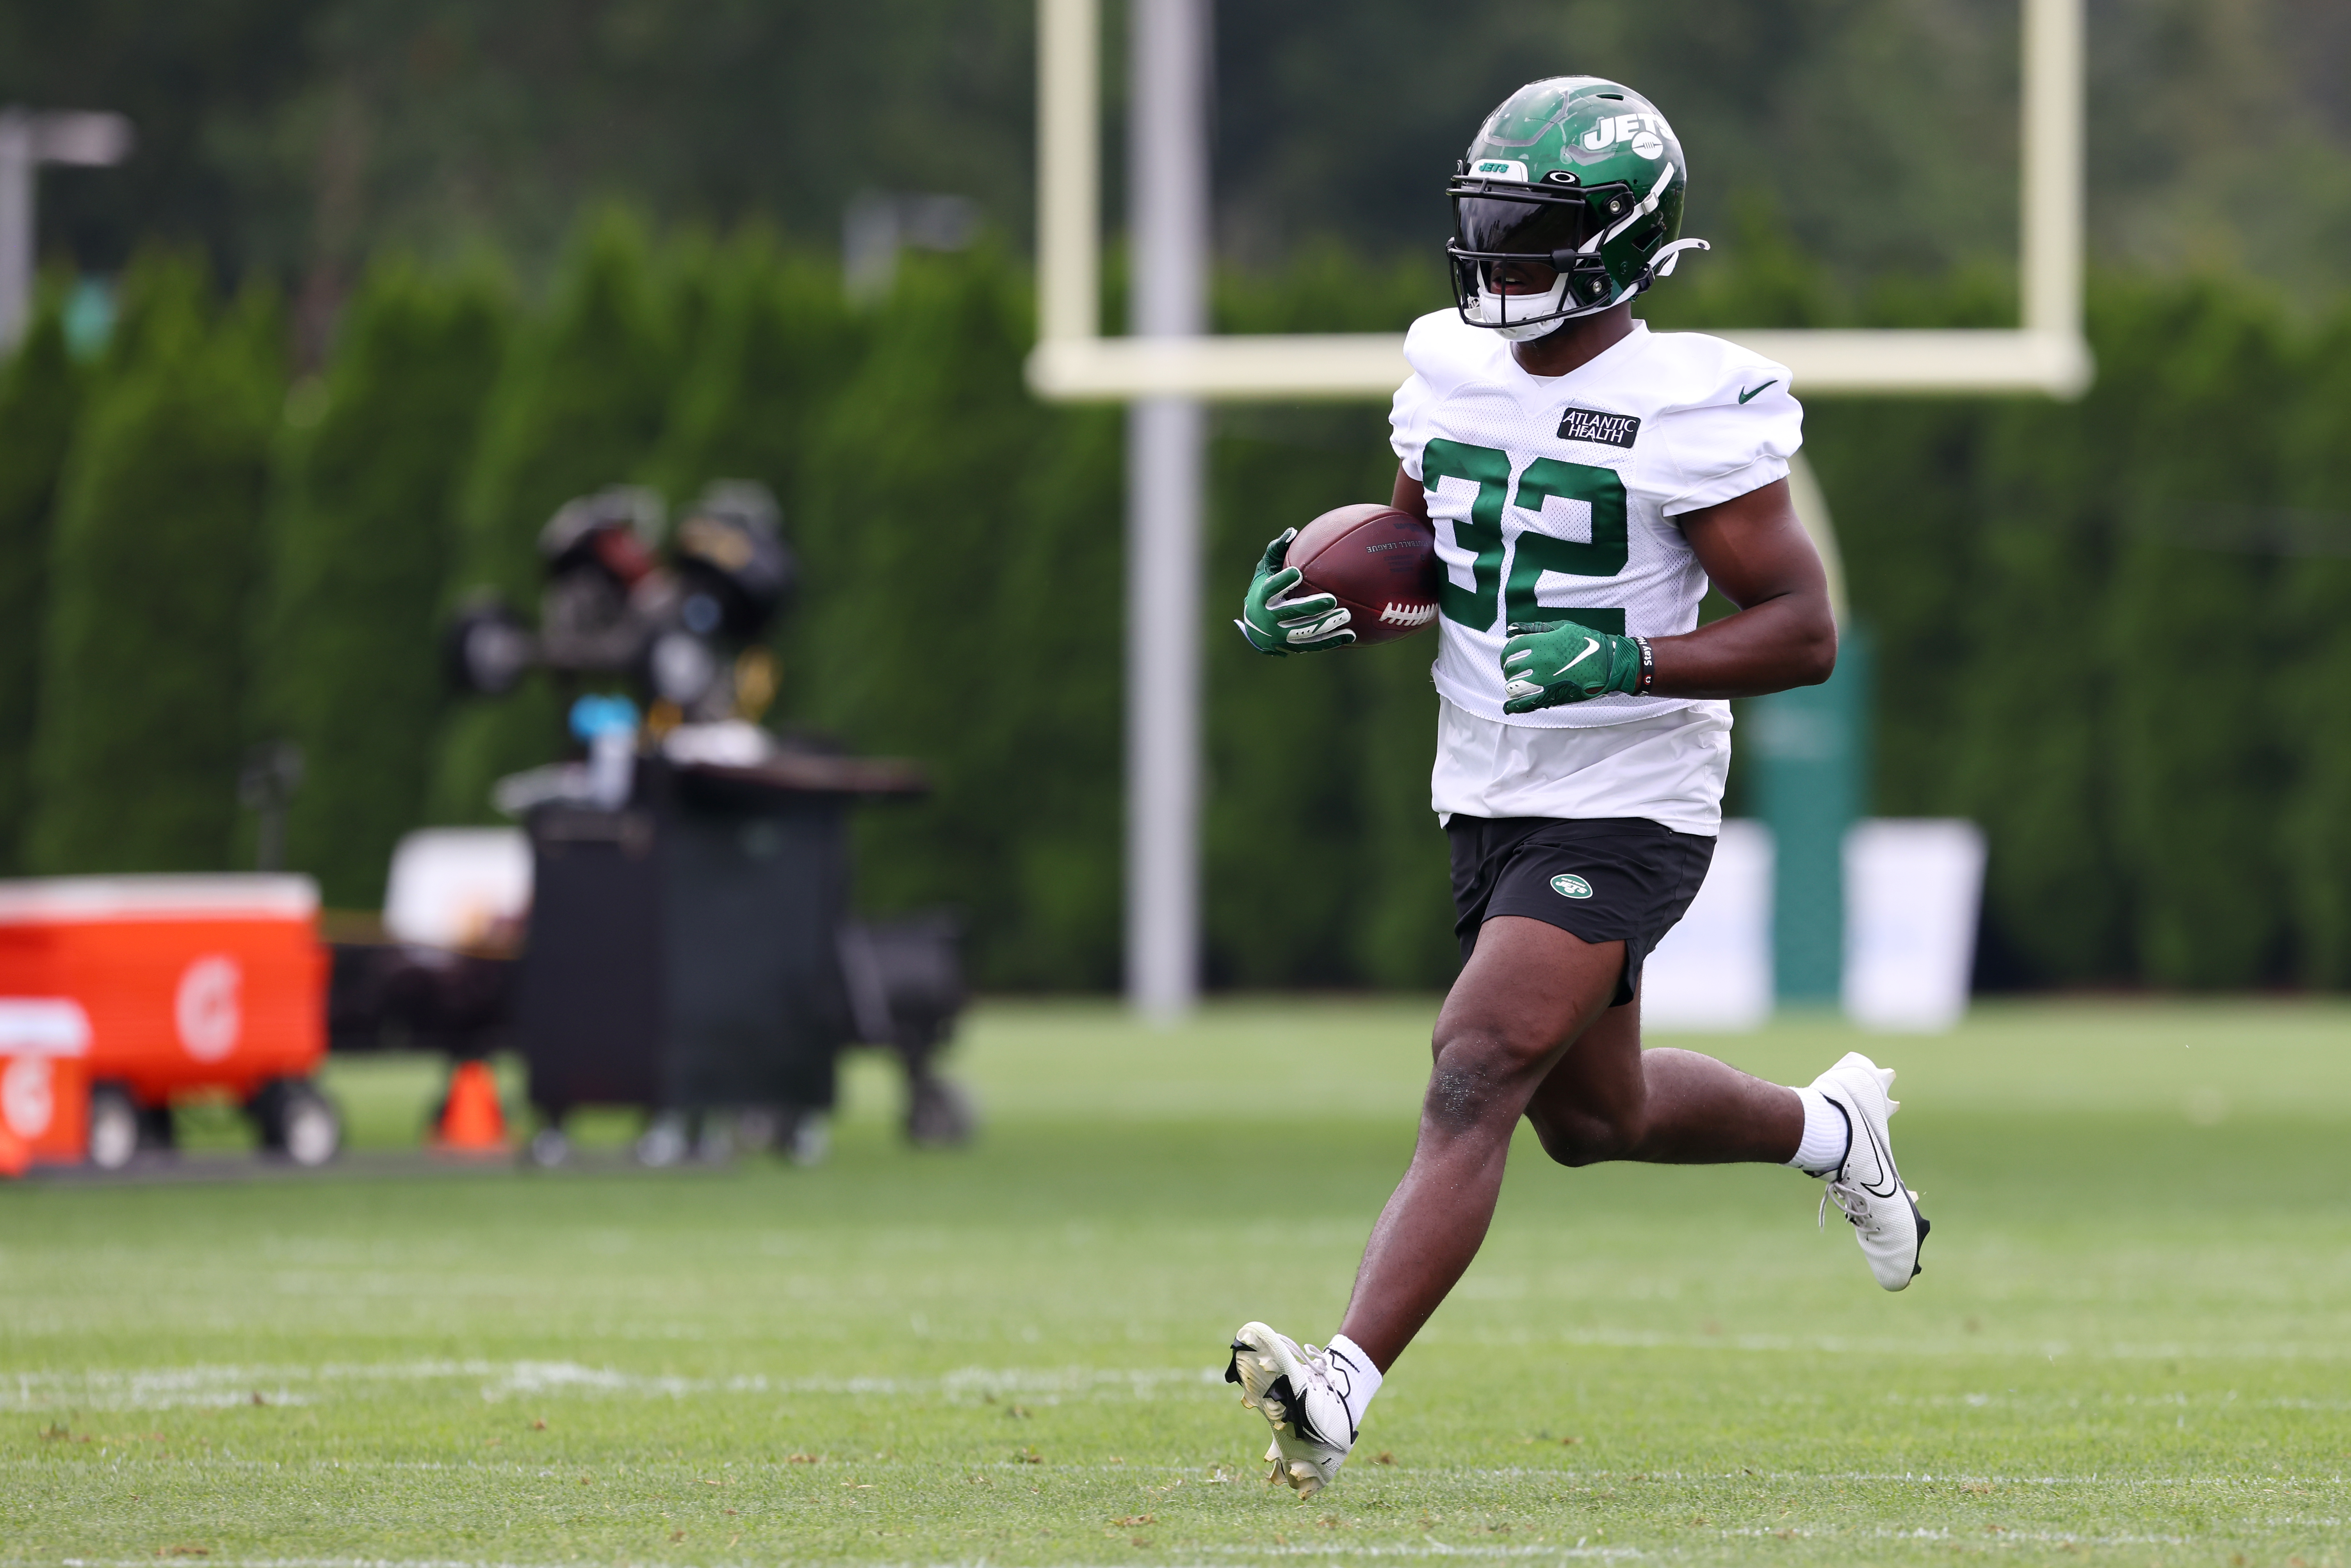 Michael Carter #32 of the New York Jets works out during a morning practice at Atlantic Health Jets Training Center on July 29, 2021 in Florham Park, New Jersey.